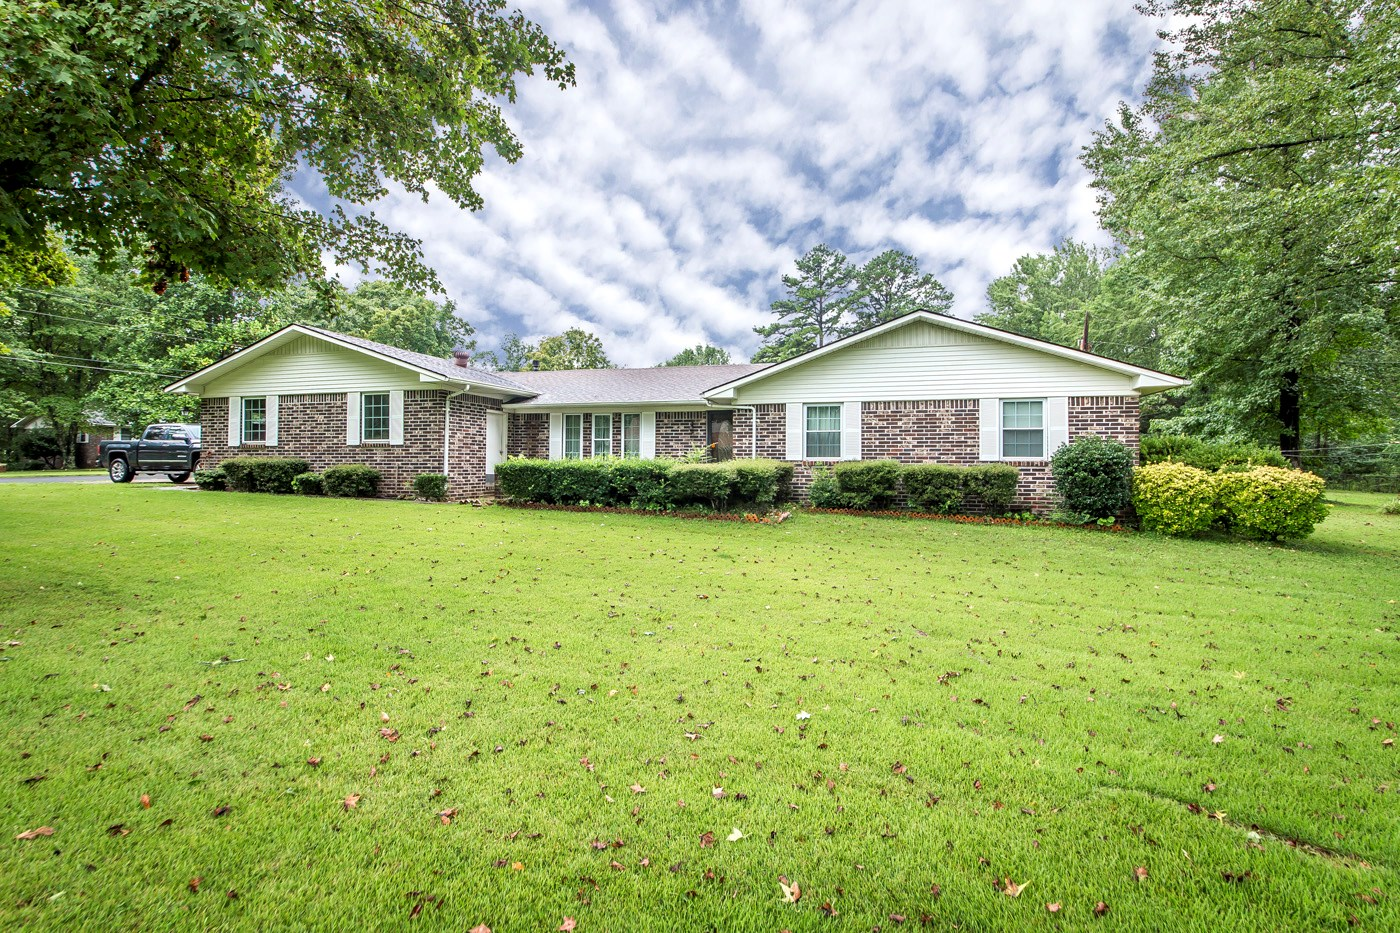 Nice Brick Home in Clinton with Inground Pool For Sale!